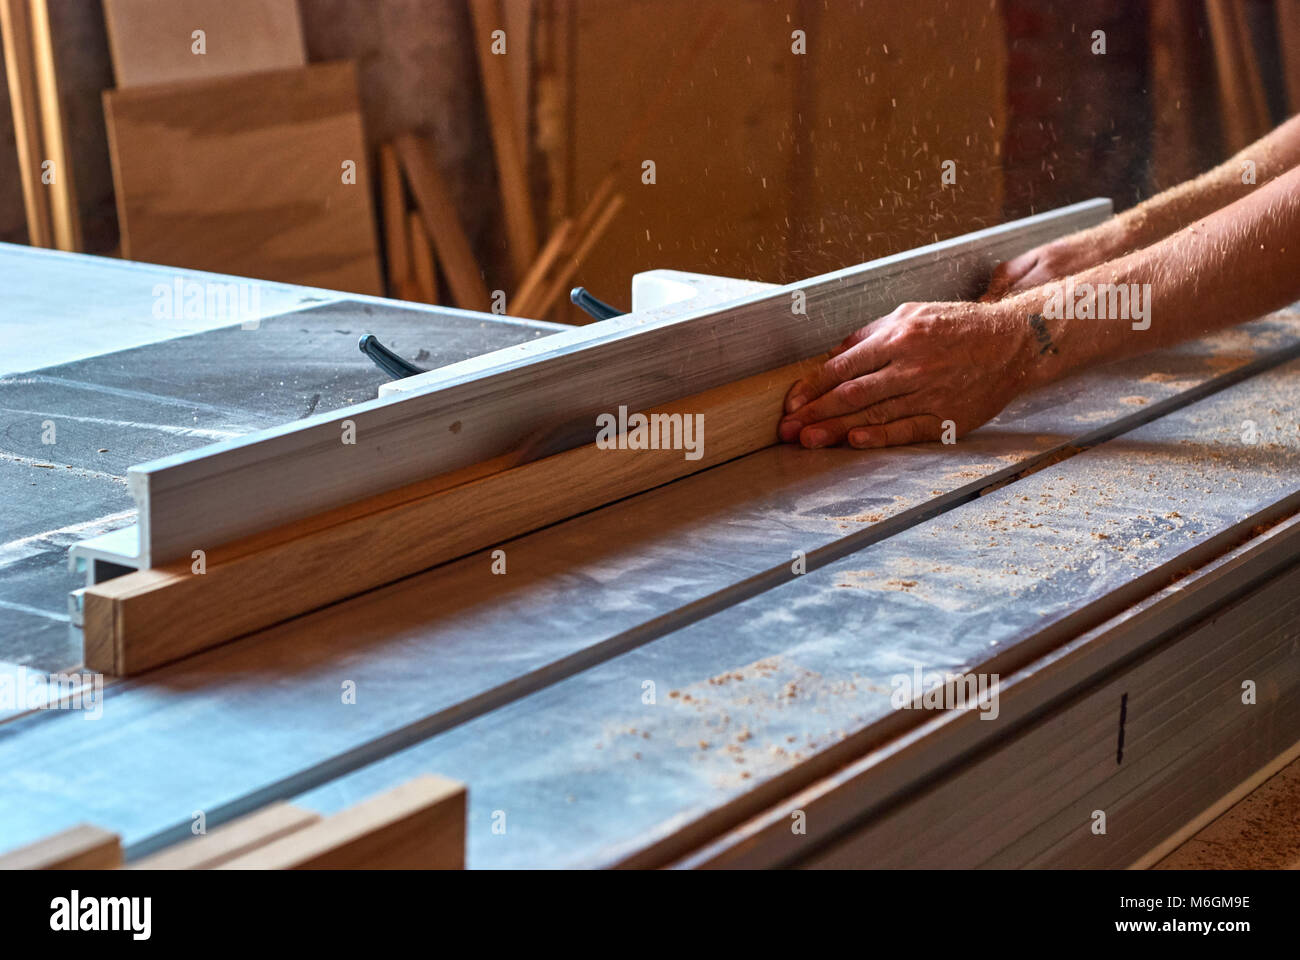 Panel squaring saw during sawing of an oak bar - Stock Image